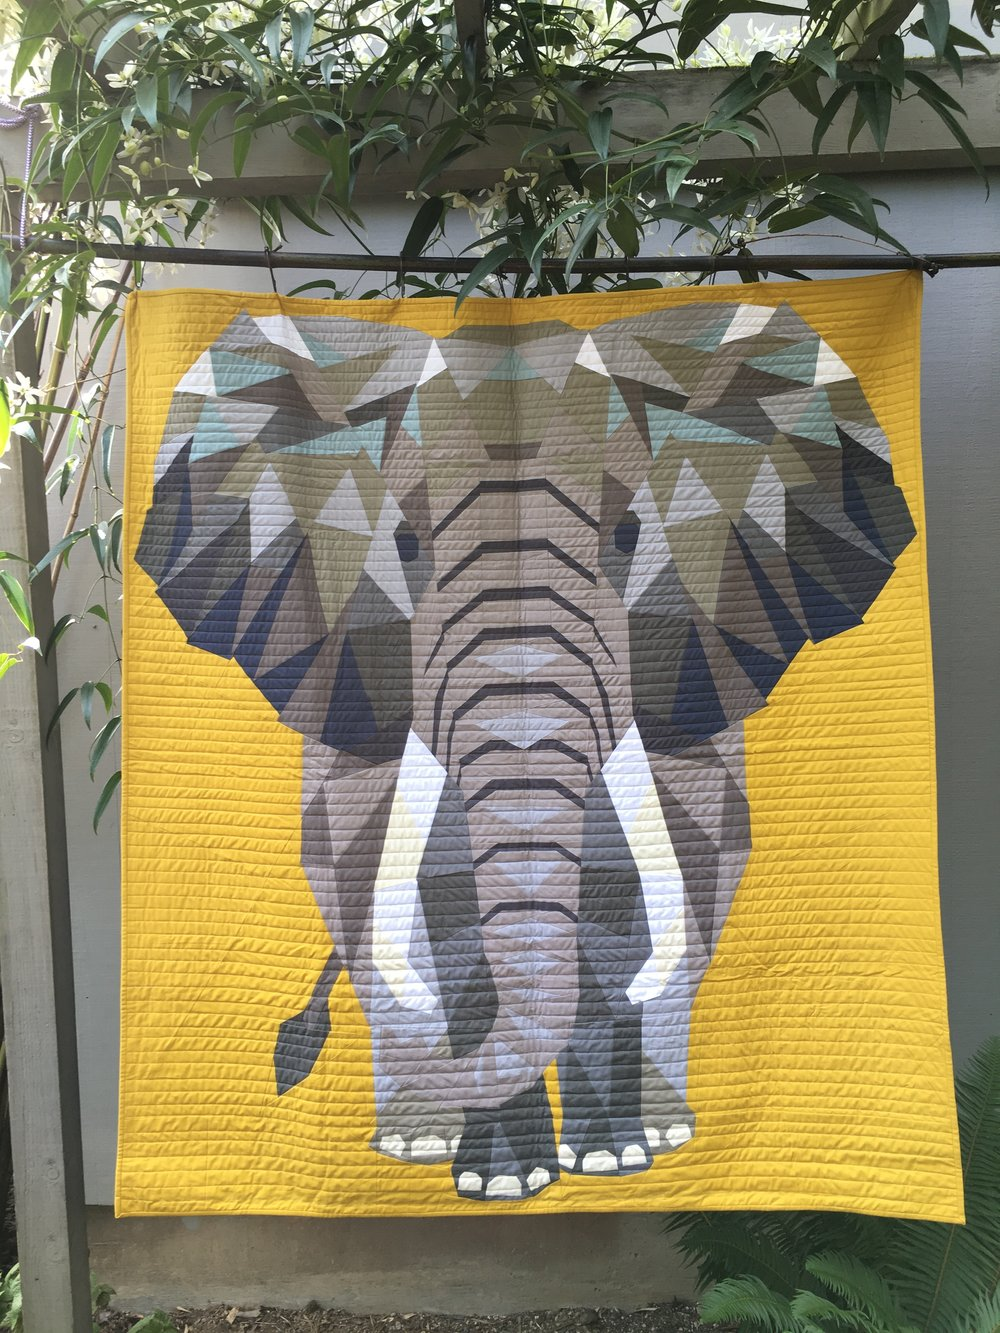 The Jungle Abstractions Quilt The Elephant by Violet Craft